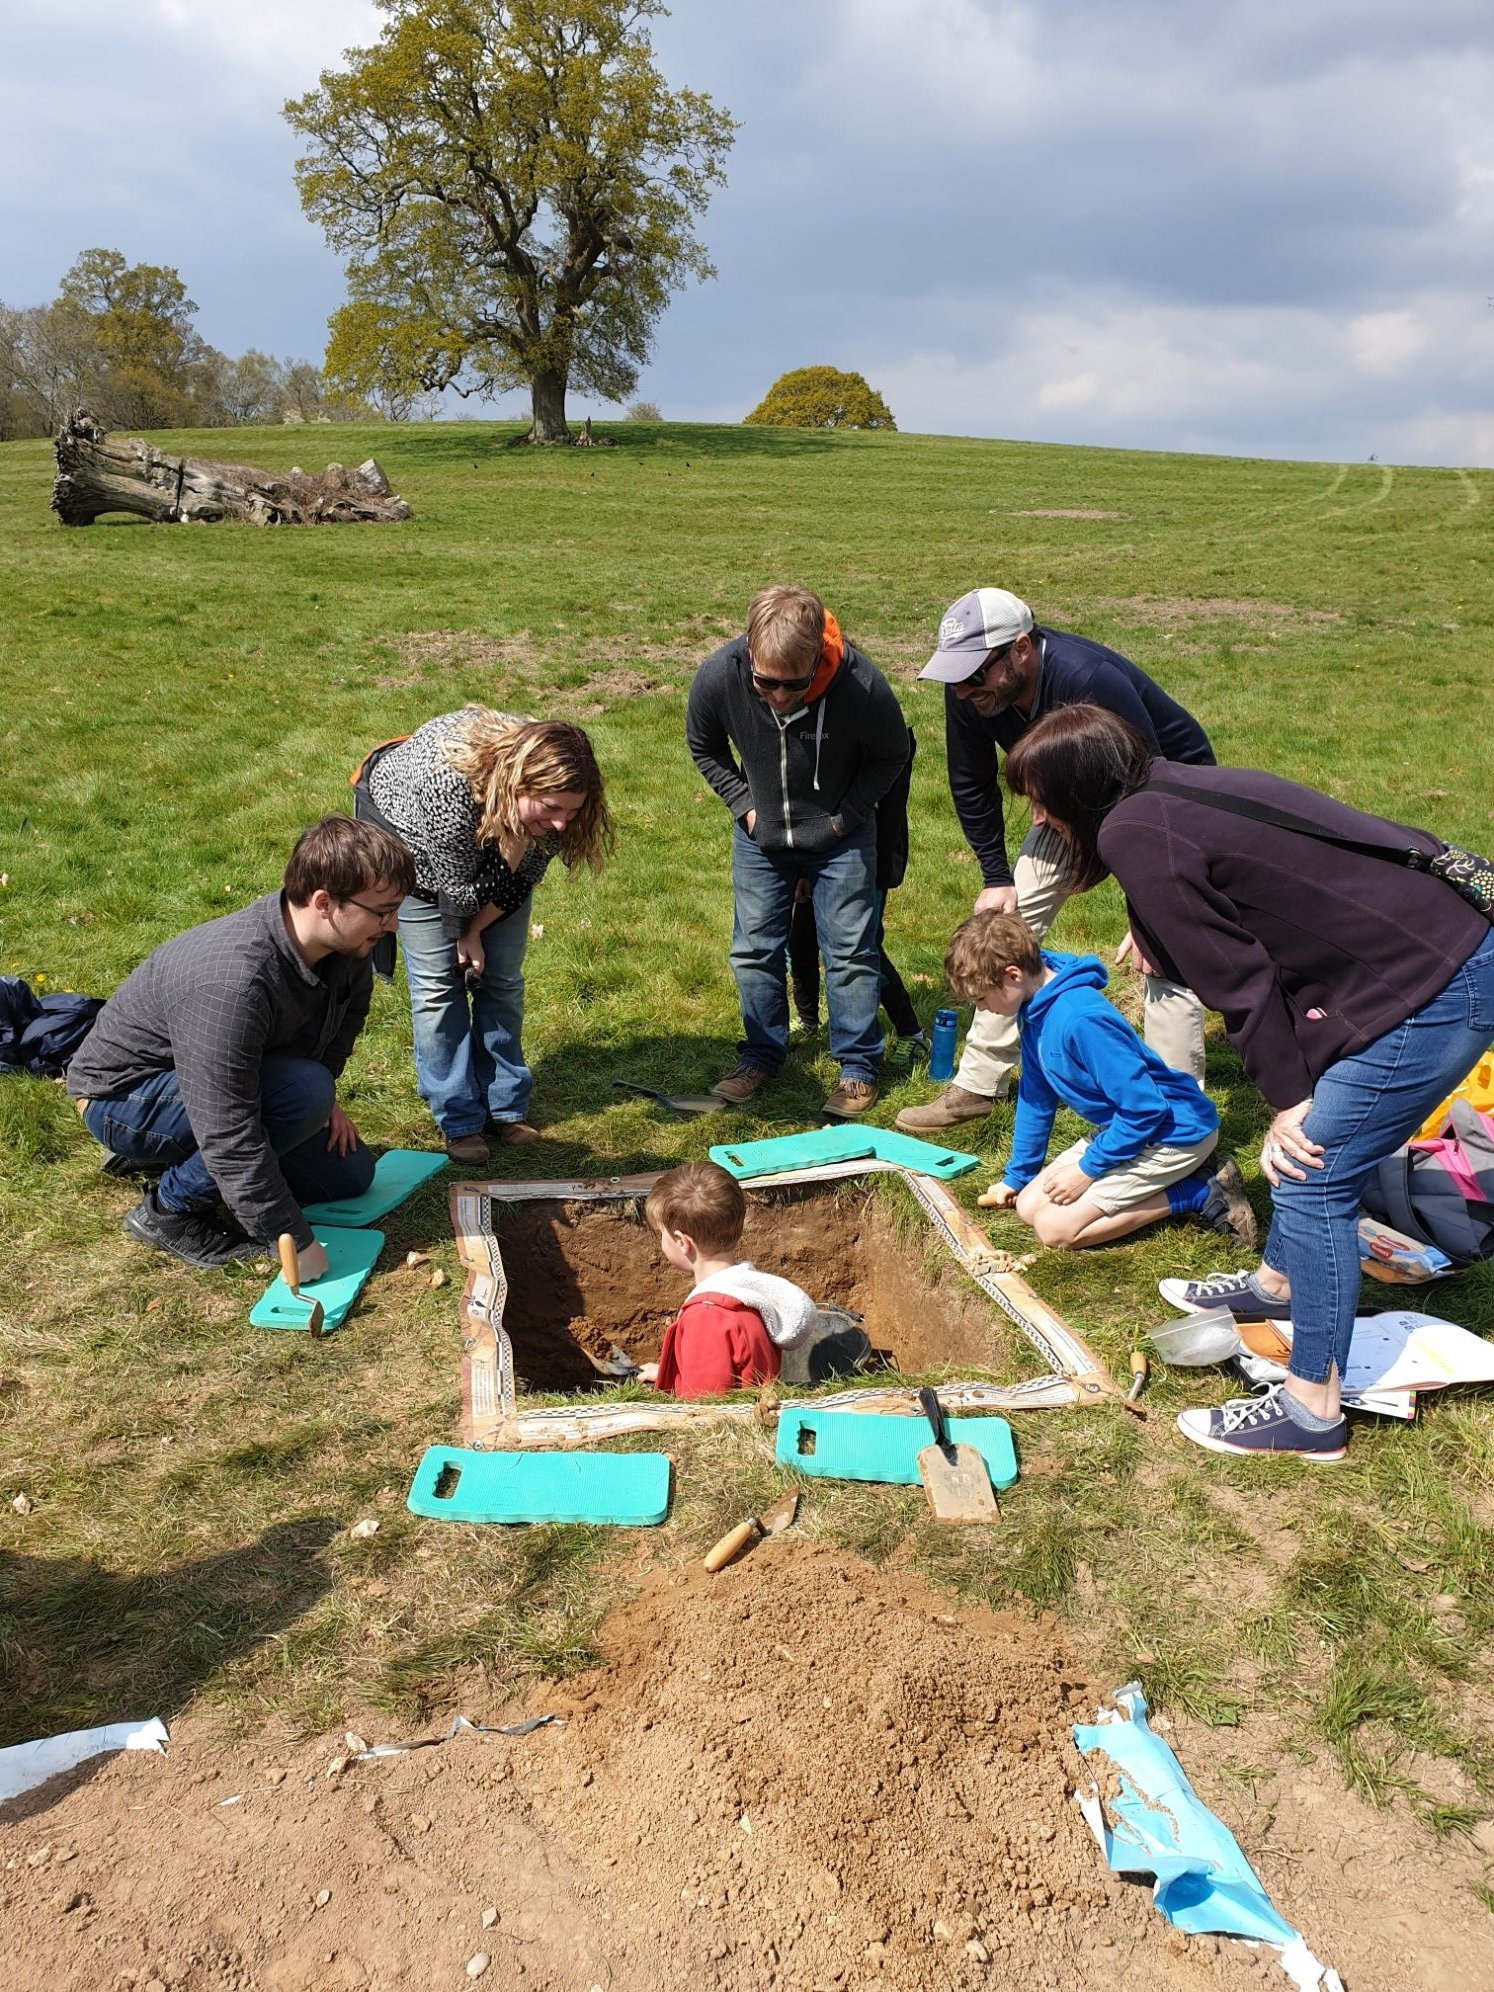 A family taking part in Dig Burley